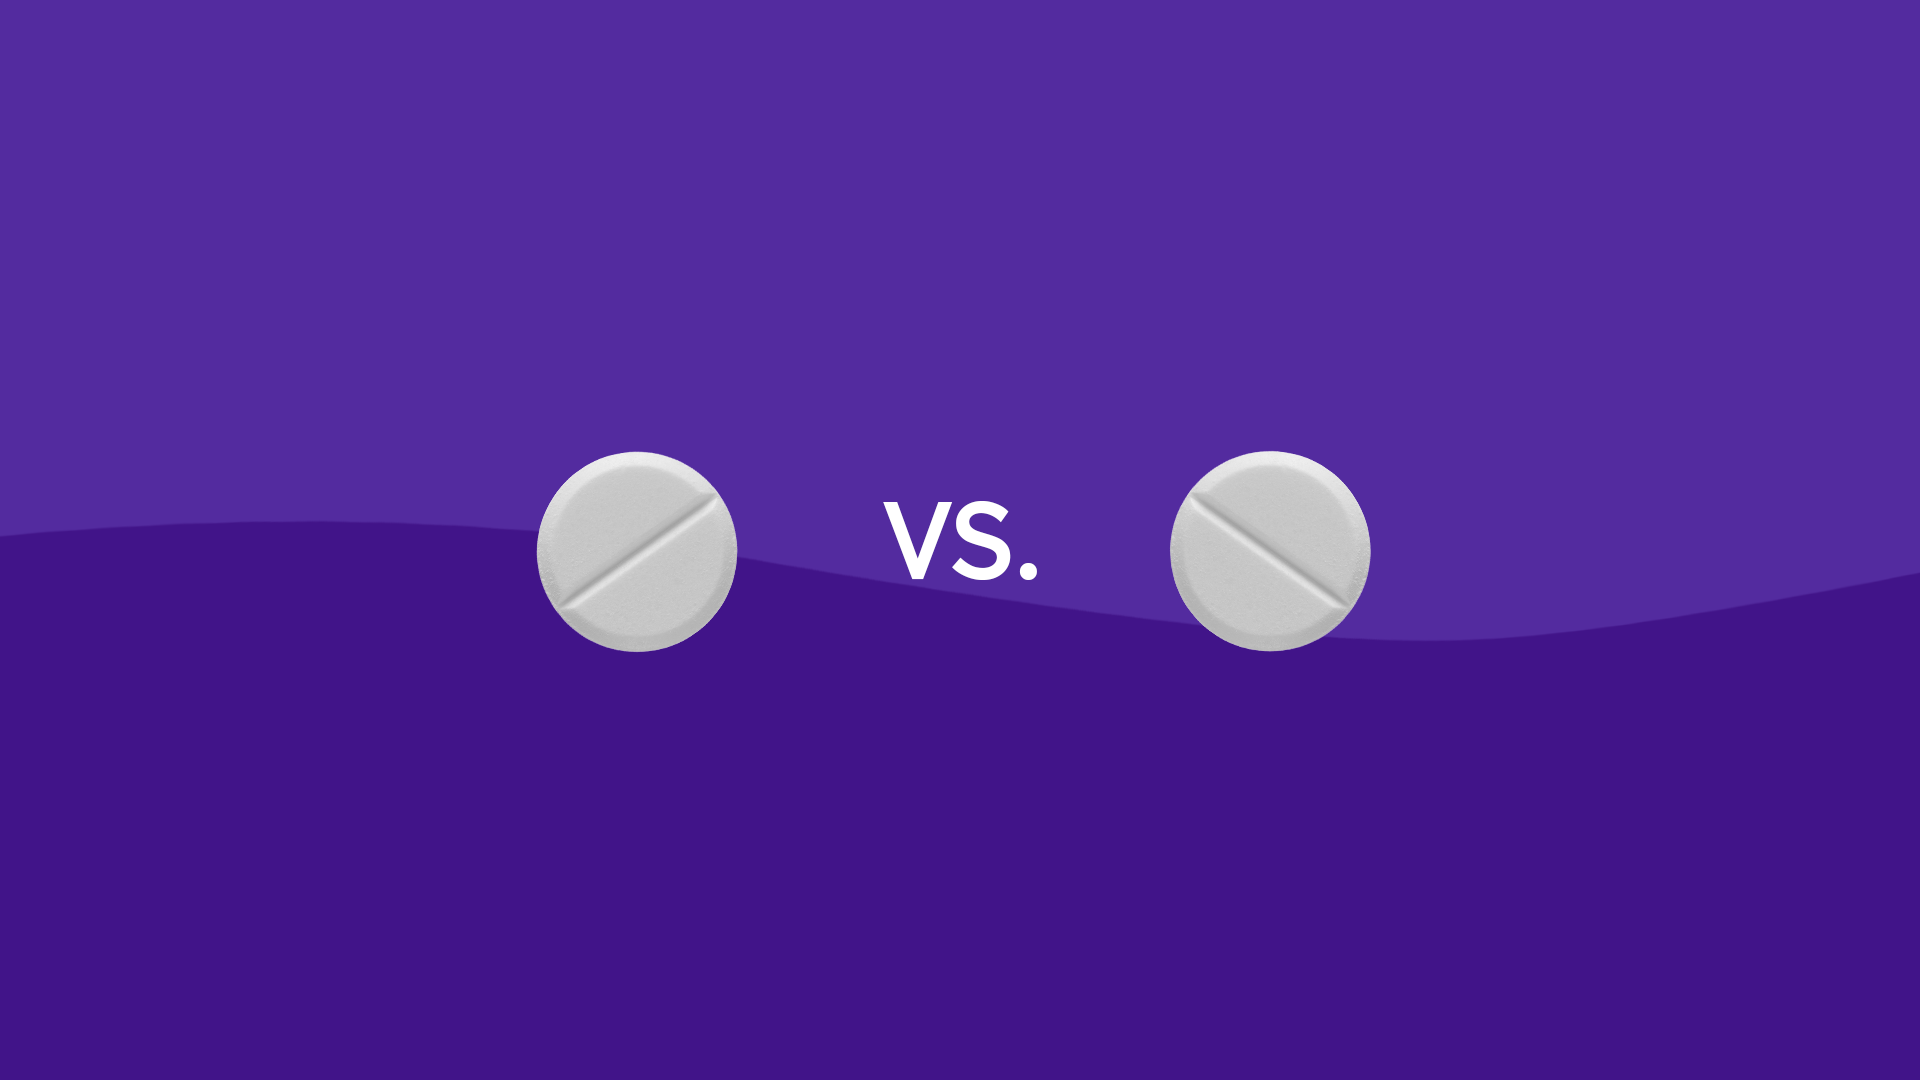 Trulance vs. Linzess: Differences, similarities, and which is better for you